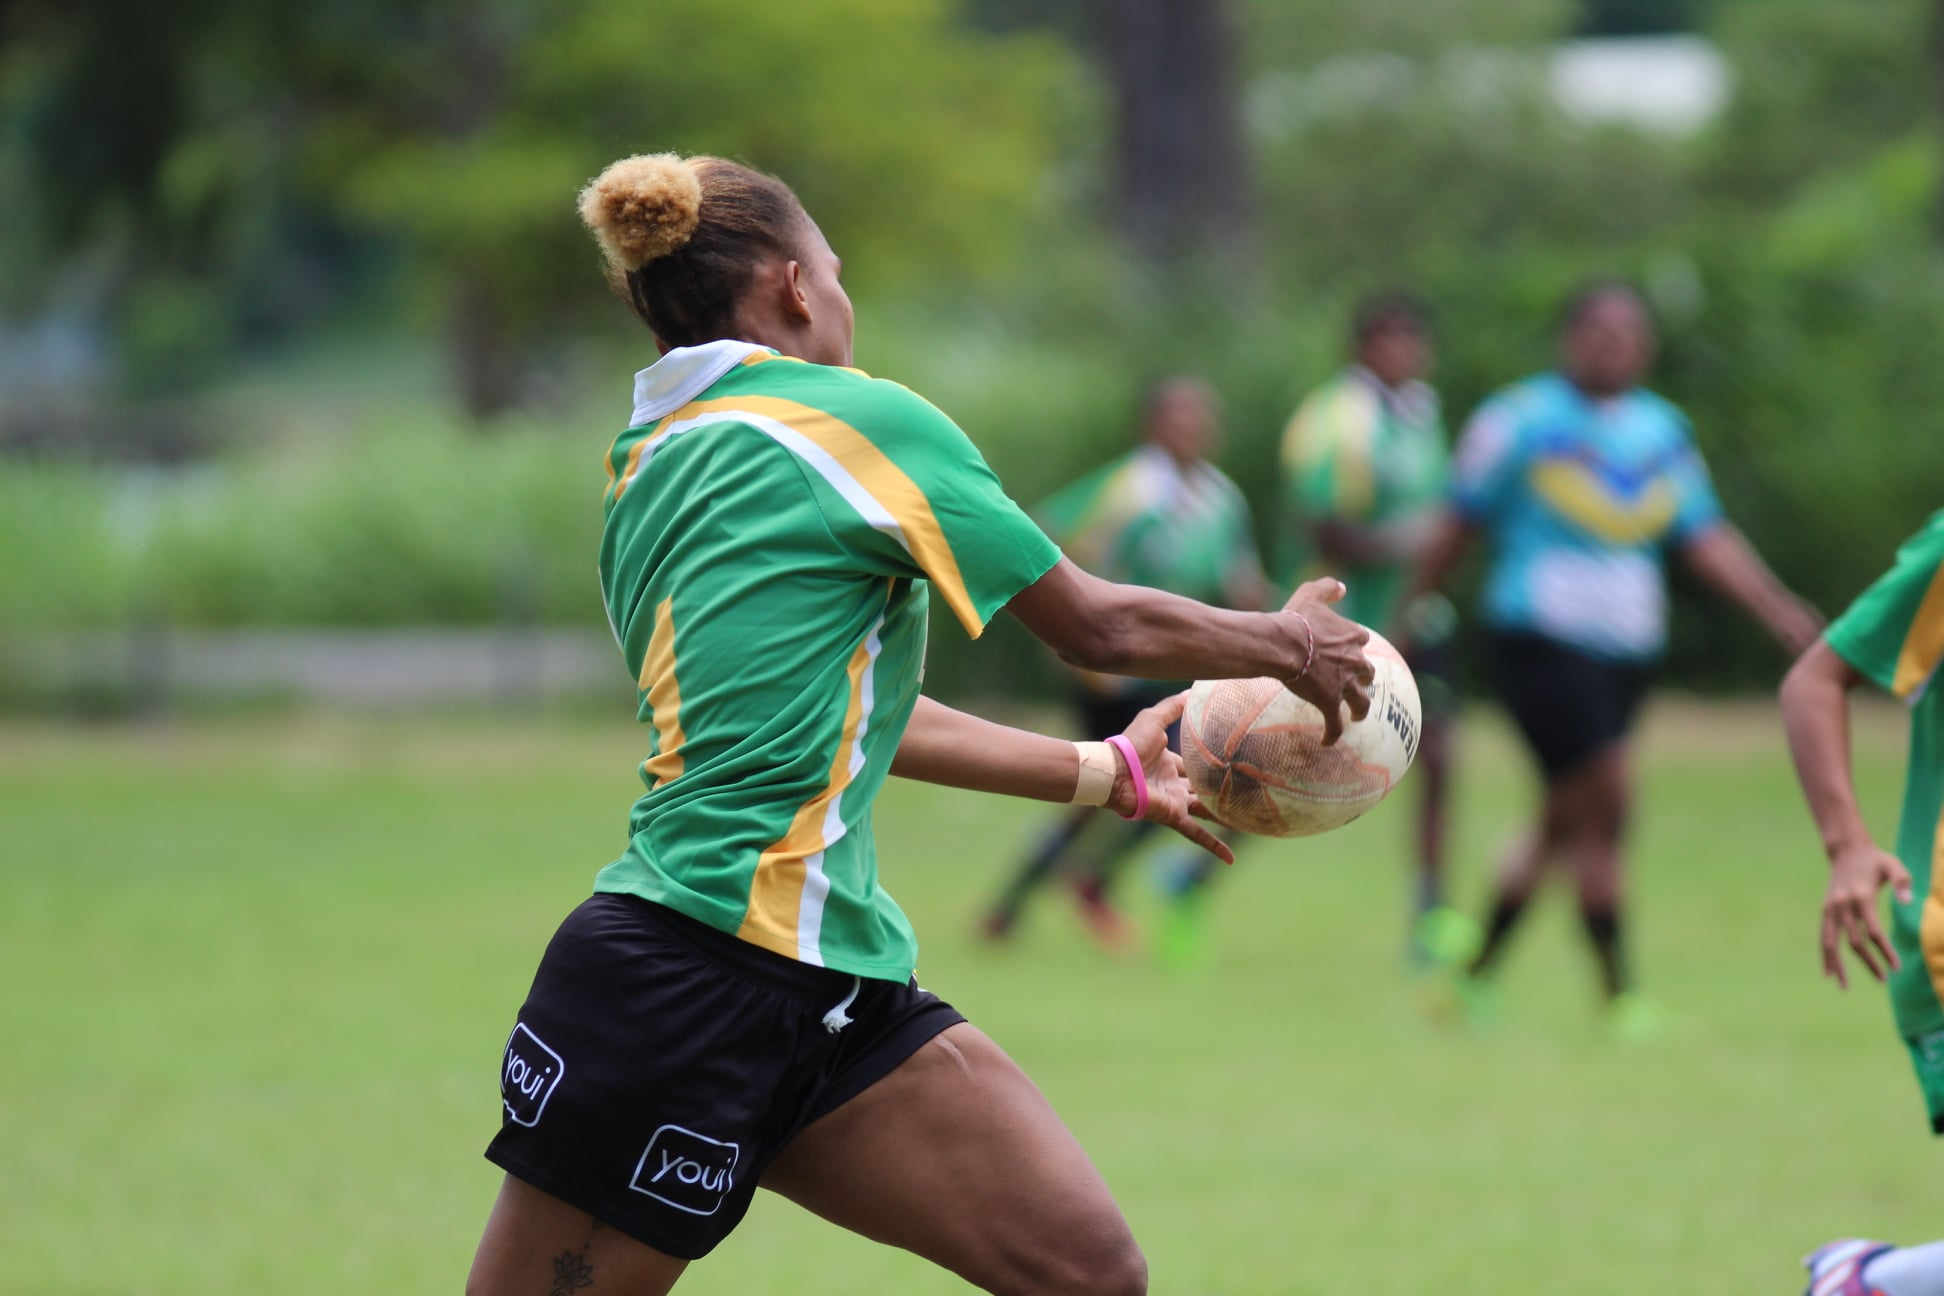 Record number of teams to take part in Icon Reeves Port Vila Nines